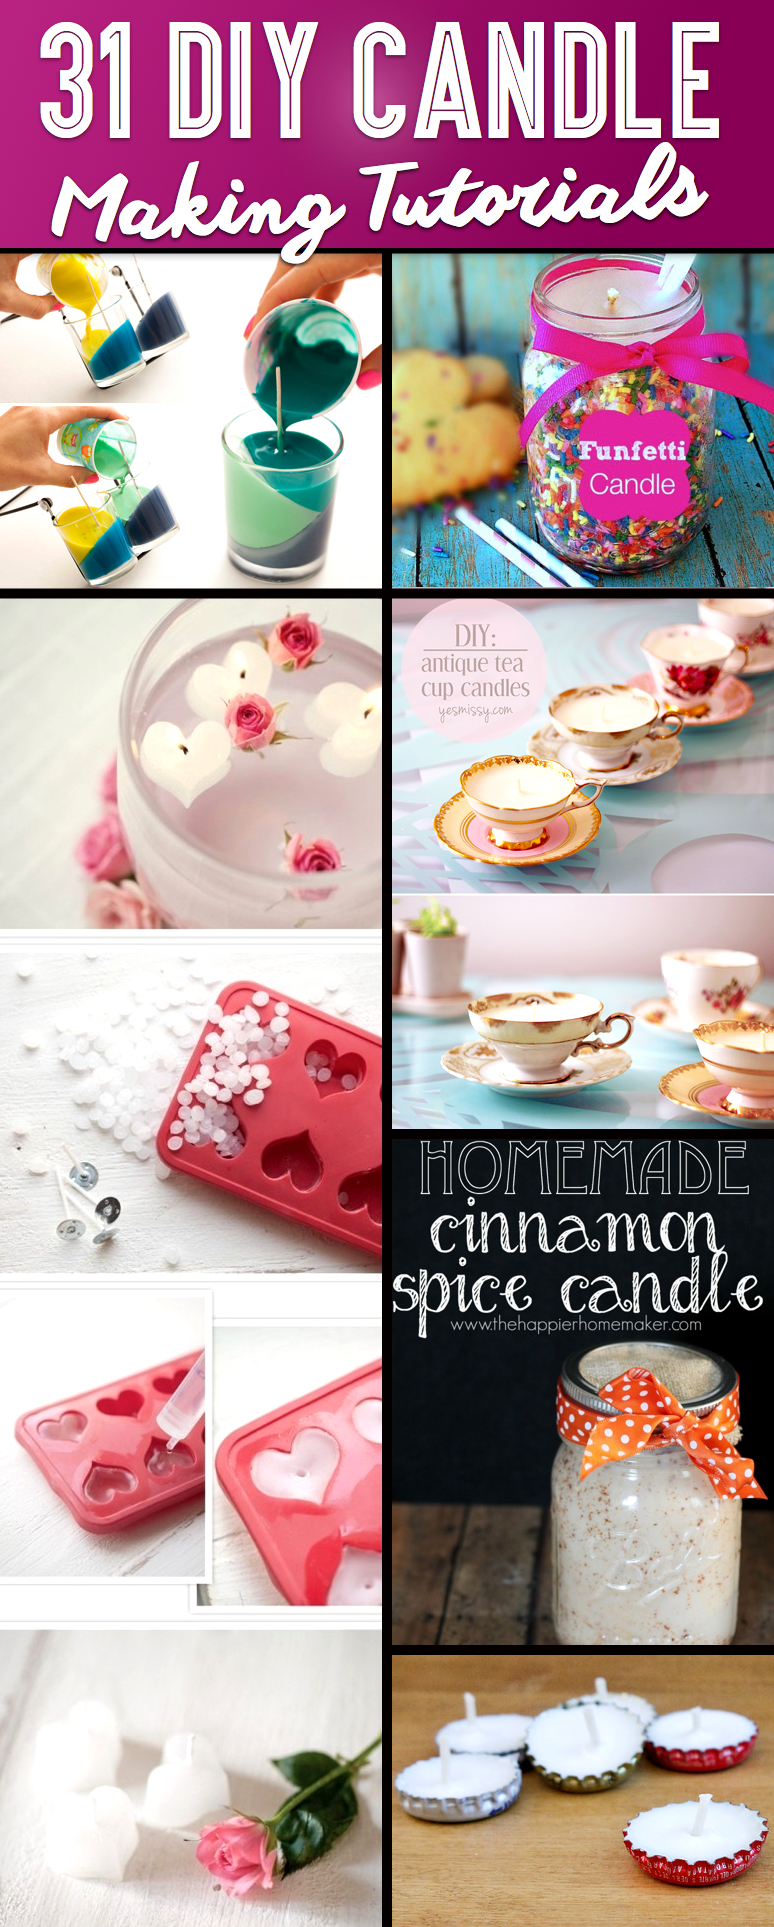 Diy Candles 31 Brilliant Diy Candle Making And Decorating Tutorials Cute Diy